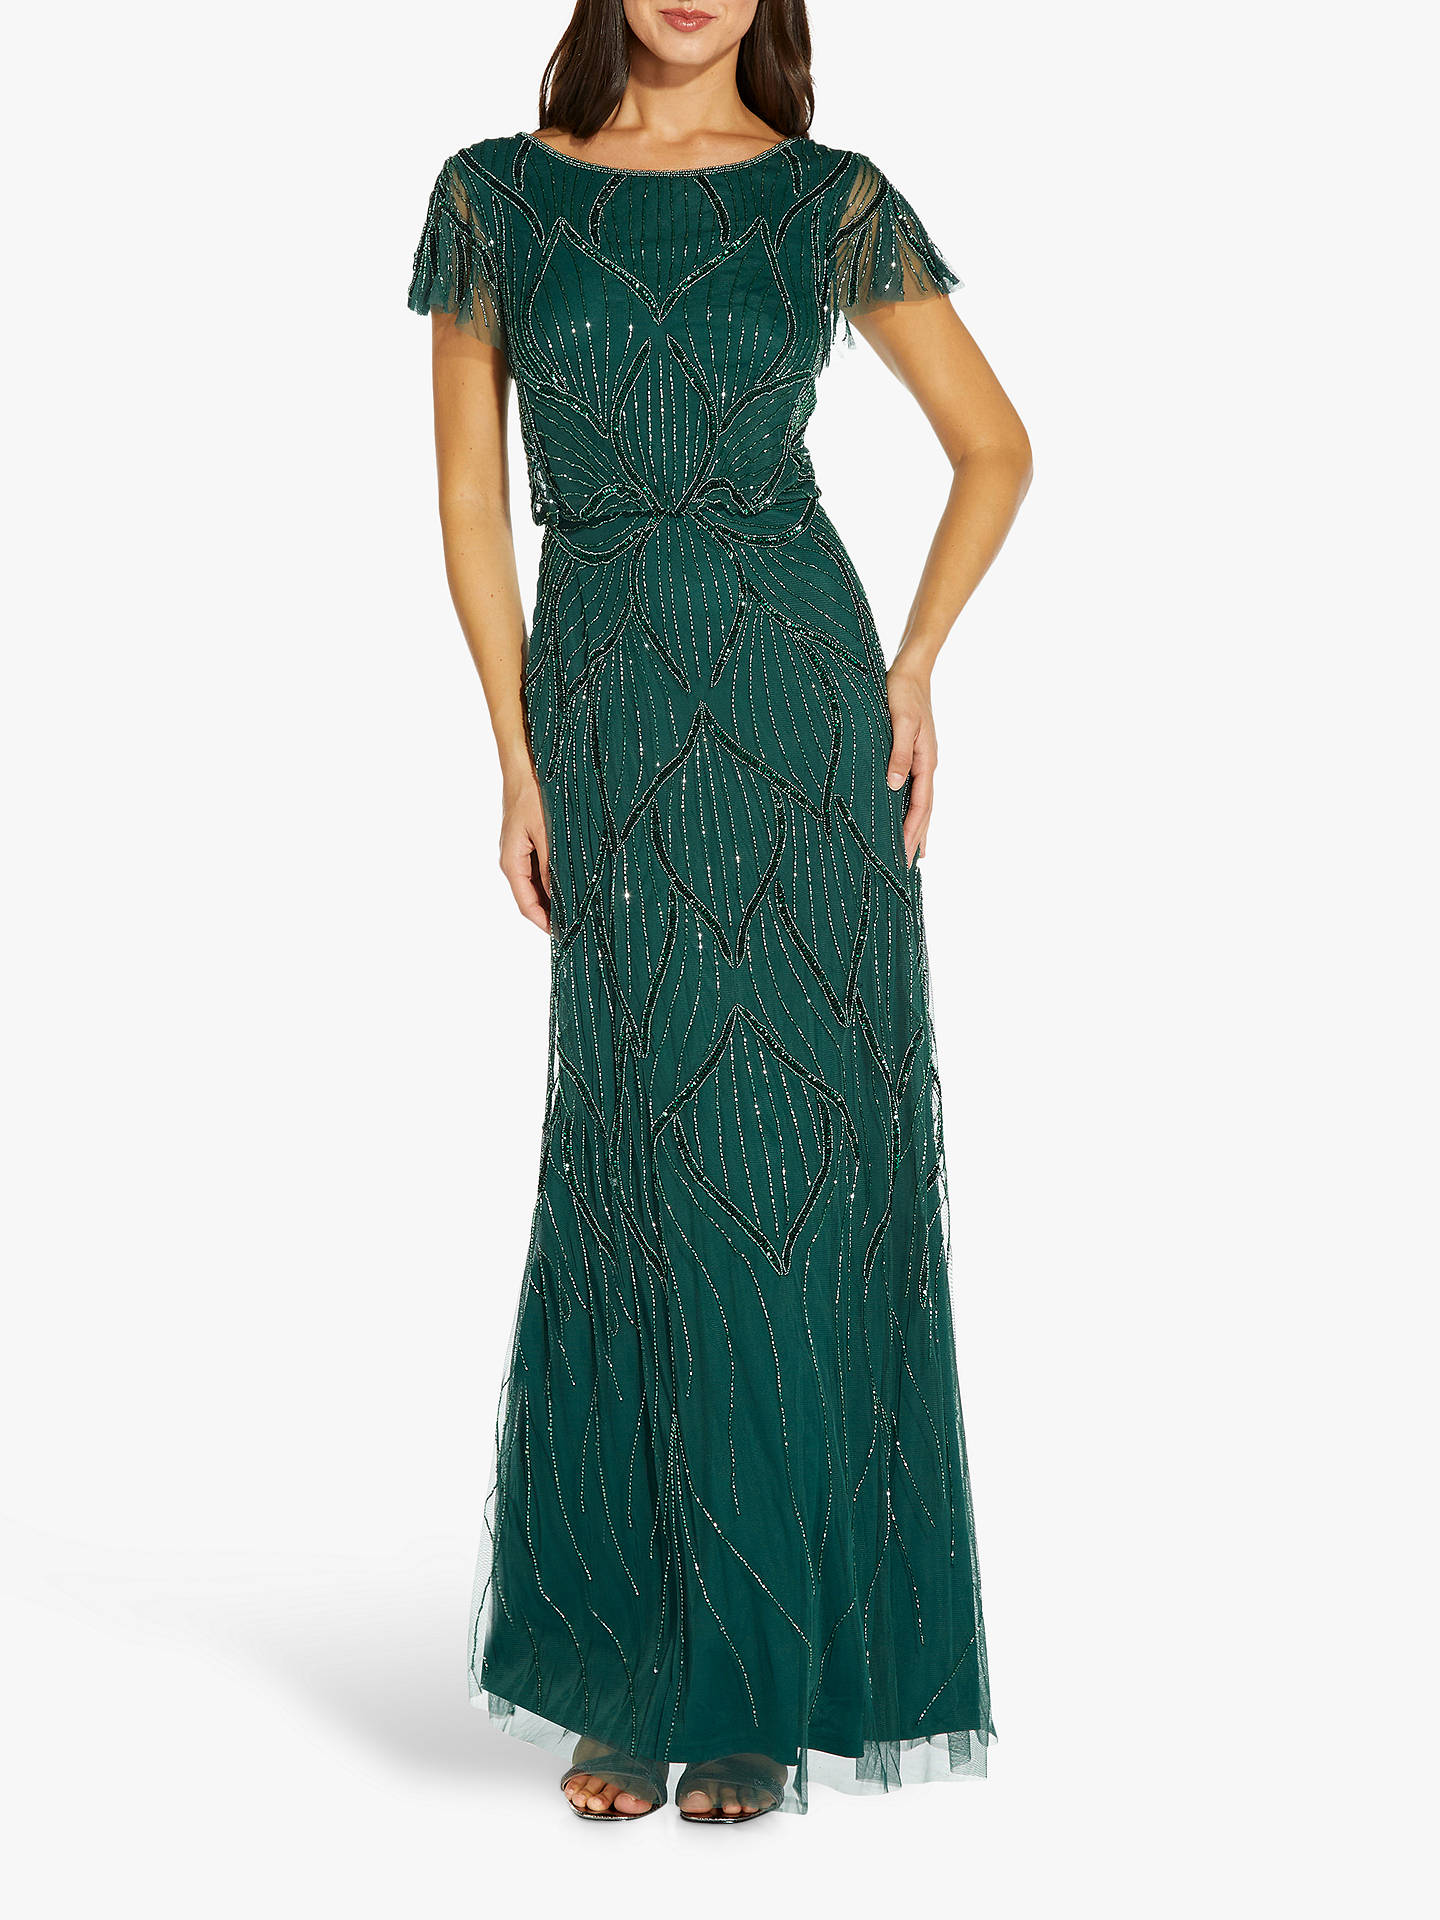 Buy Adrianna Papell Blouson Floral Embellished Maxi Gown, Dusty Emerald, 6 Online at johnlewis.com